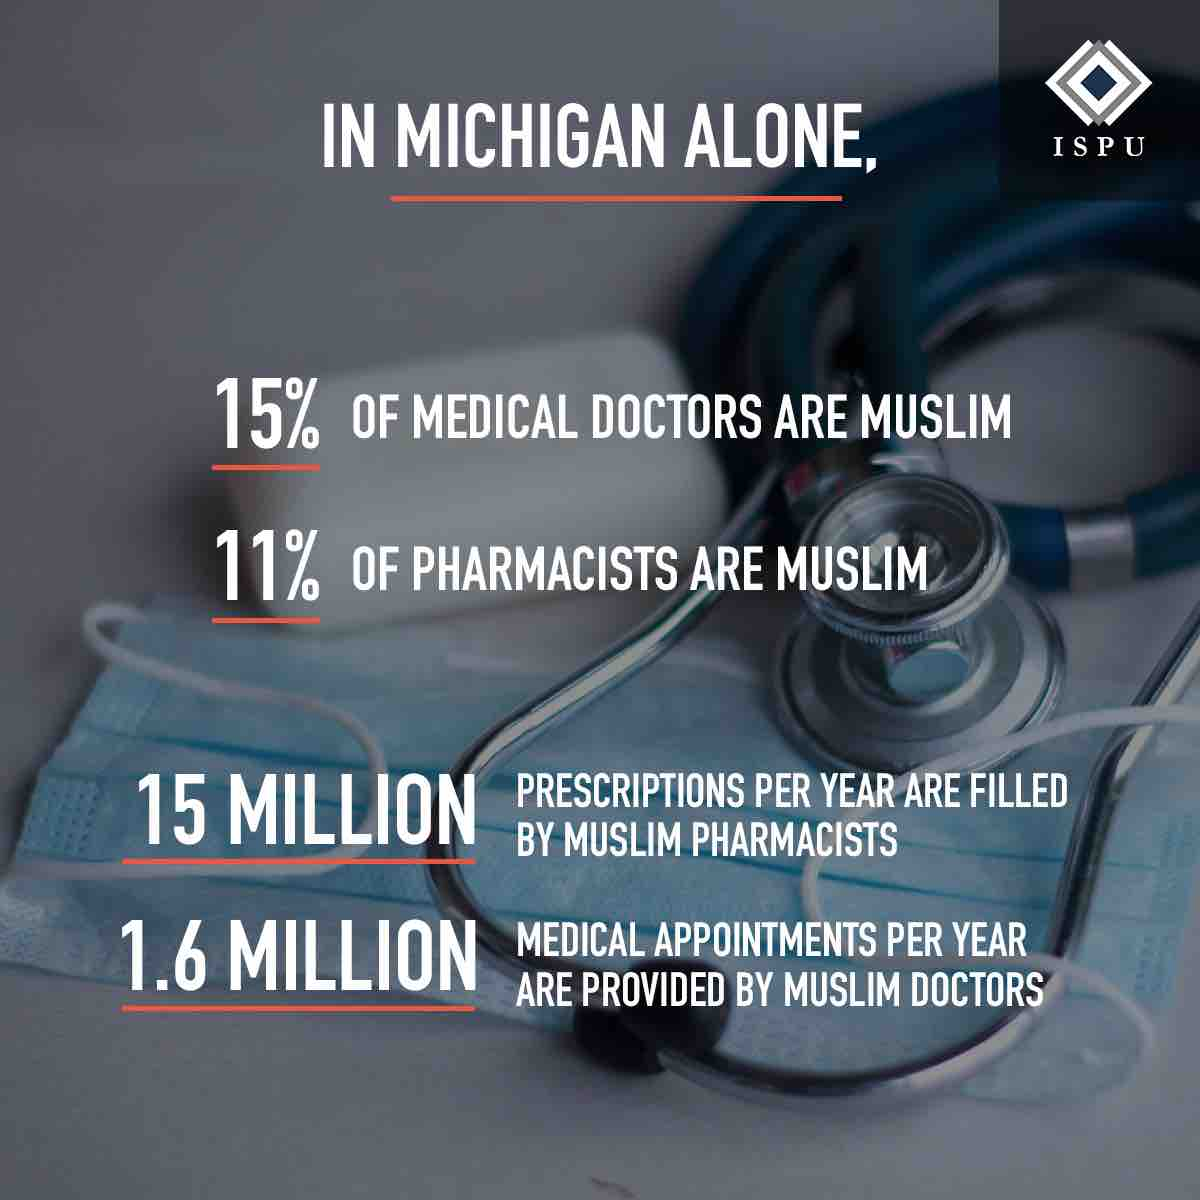 In Michigan alone, 15% of medical doctors are Muslim, 11% of pharmacists are Muslim, 15 million prescriptions per year are filled by Muslim pharmacists, and 1.6 million medical appointments per year are provided by Muslim doctors.